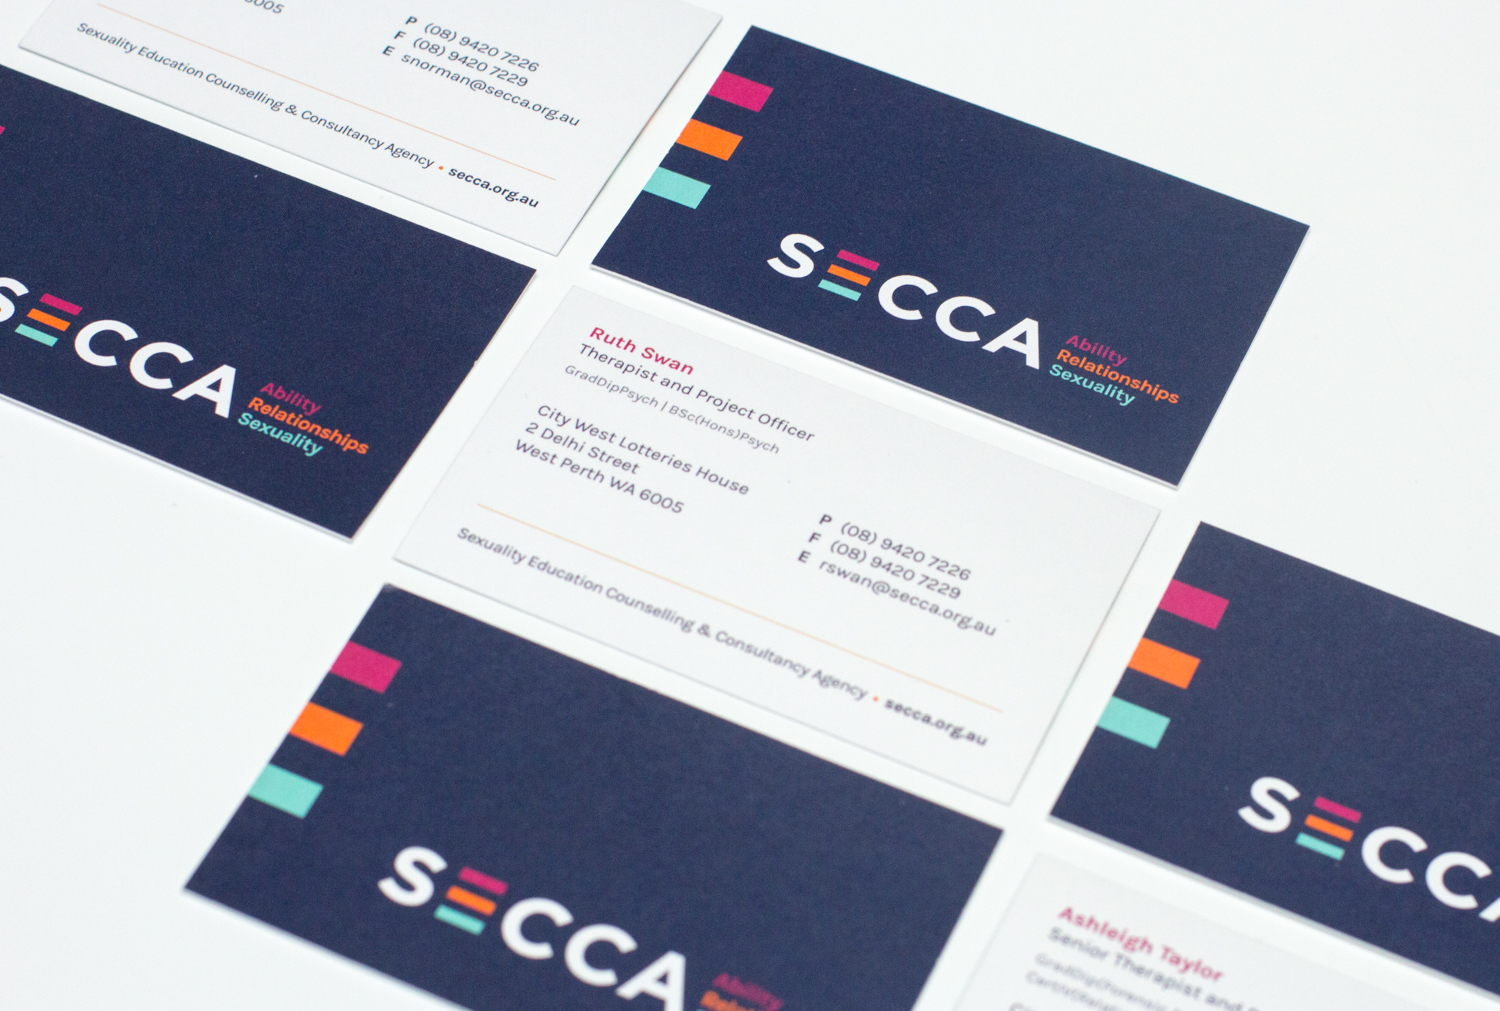 SECCA Business cards